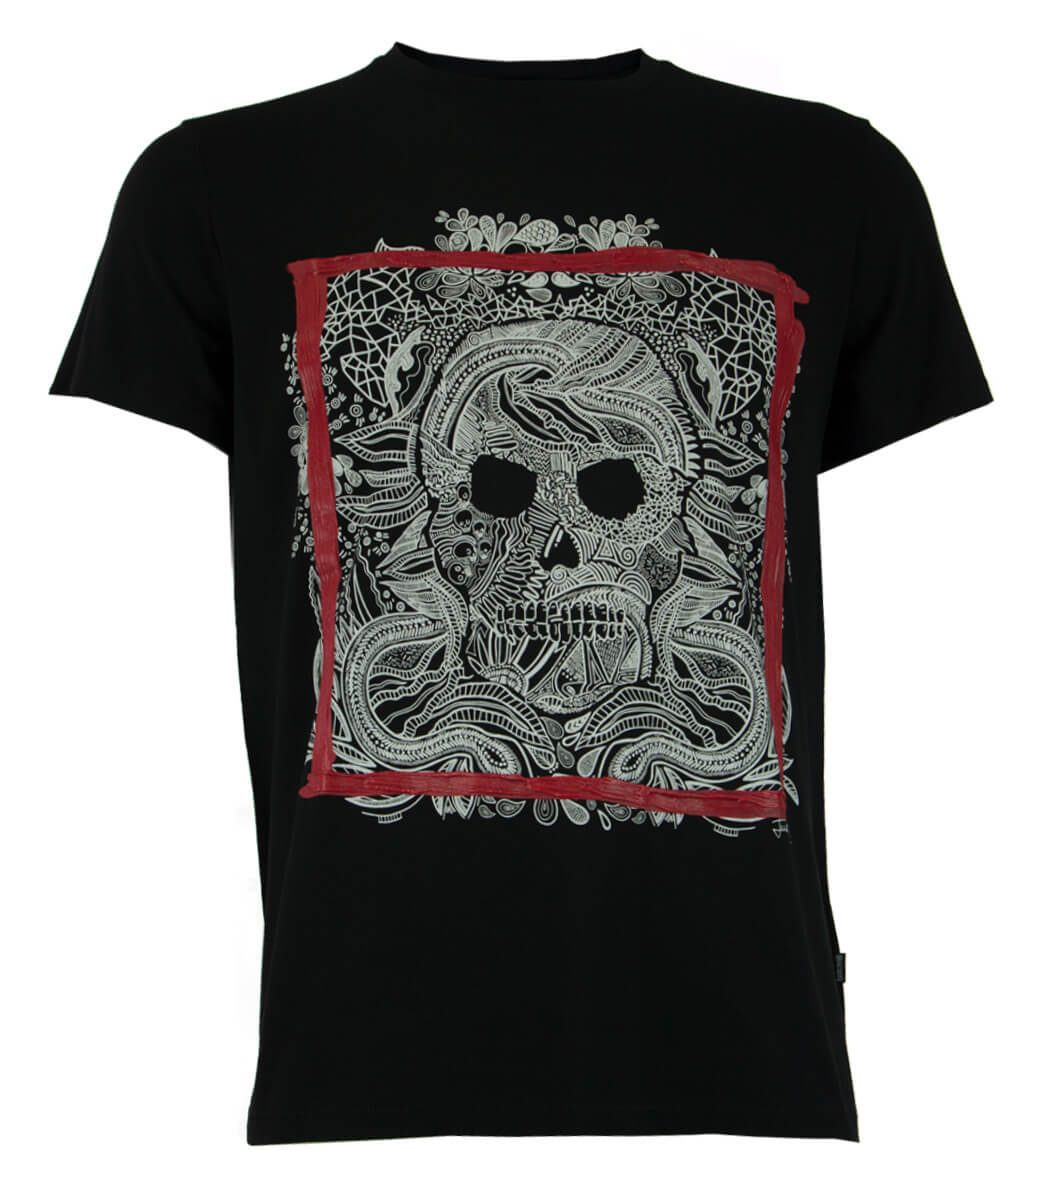 e090369f Men's T-Shirt Just Cavalli S01GC0499 Blk - MyFashionStore.eu